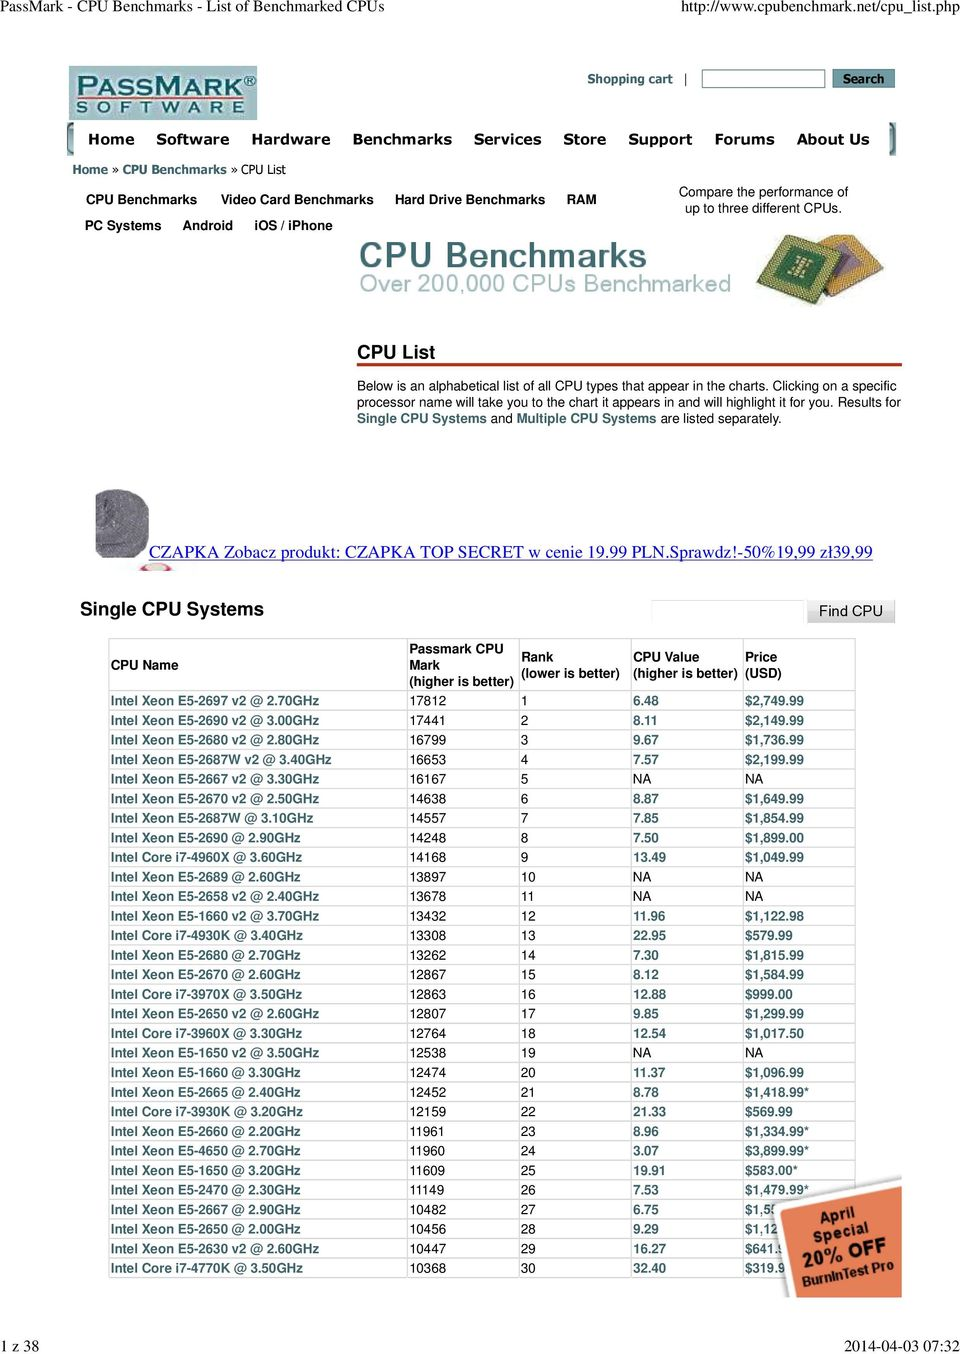 CPU List Below is an alphabetical list of all CPU types that appear in the charts. Clicking on a specific processor name will take you to the chart it appears in and will highlight it for you.